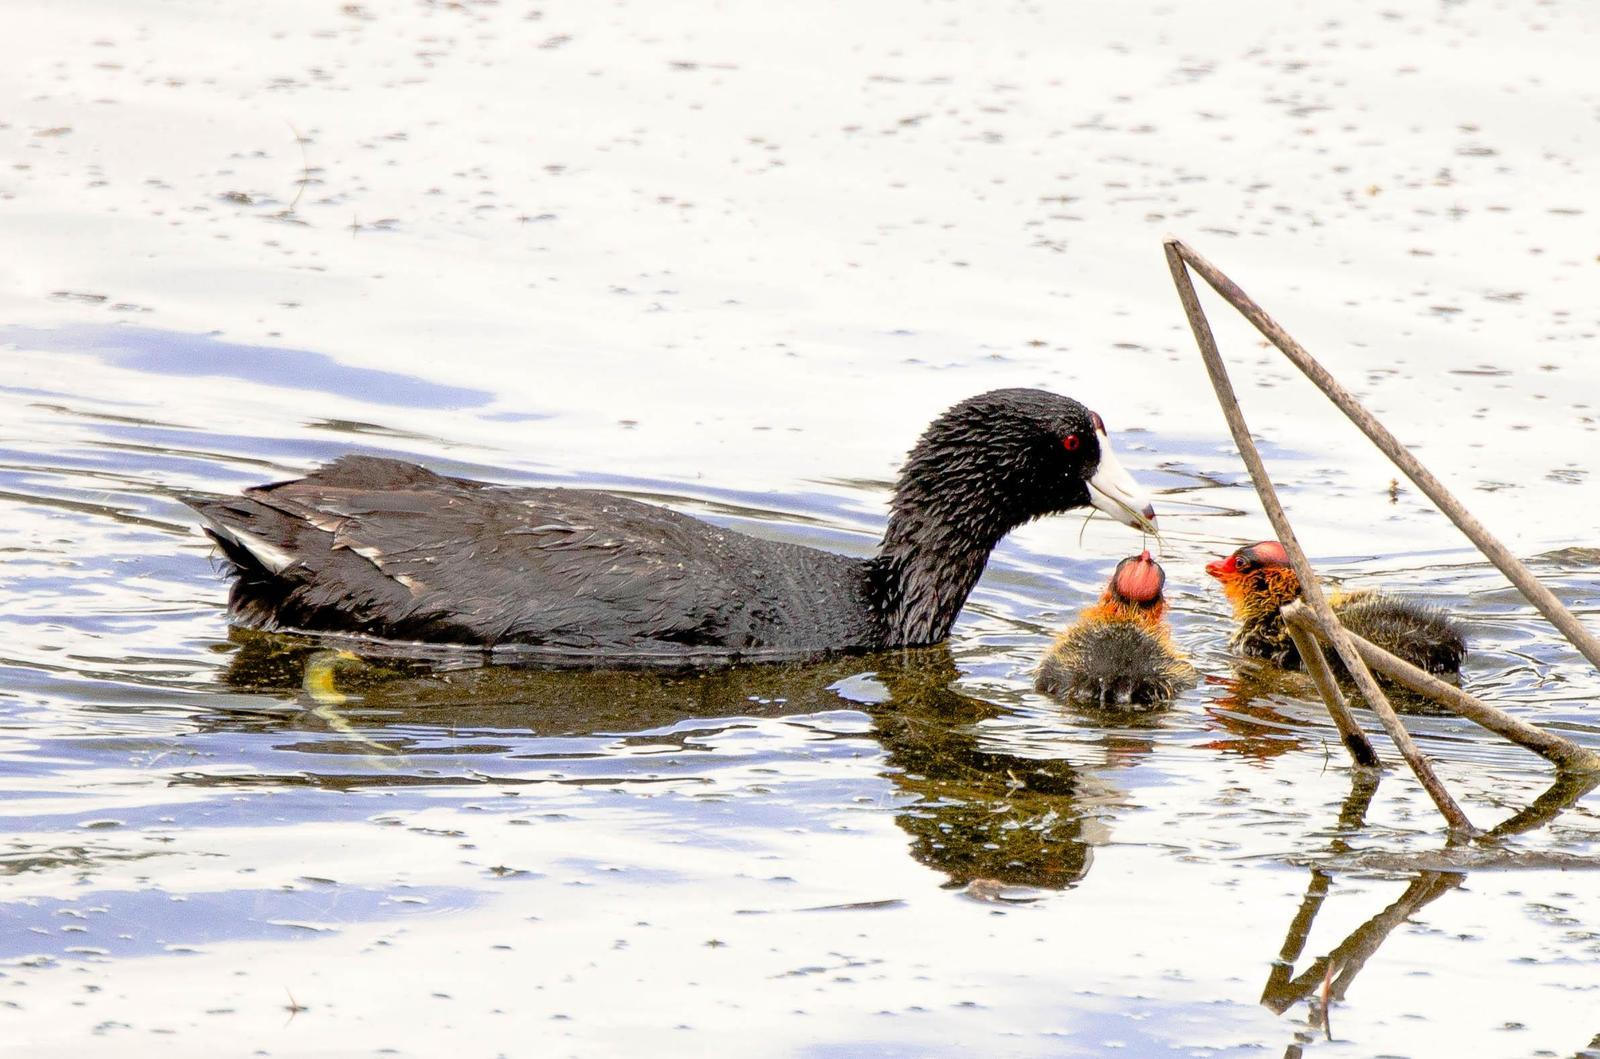 American Coot Photo by Scott Yerges